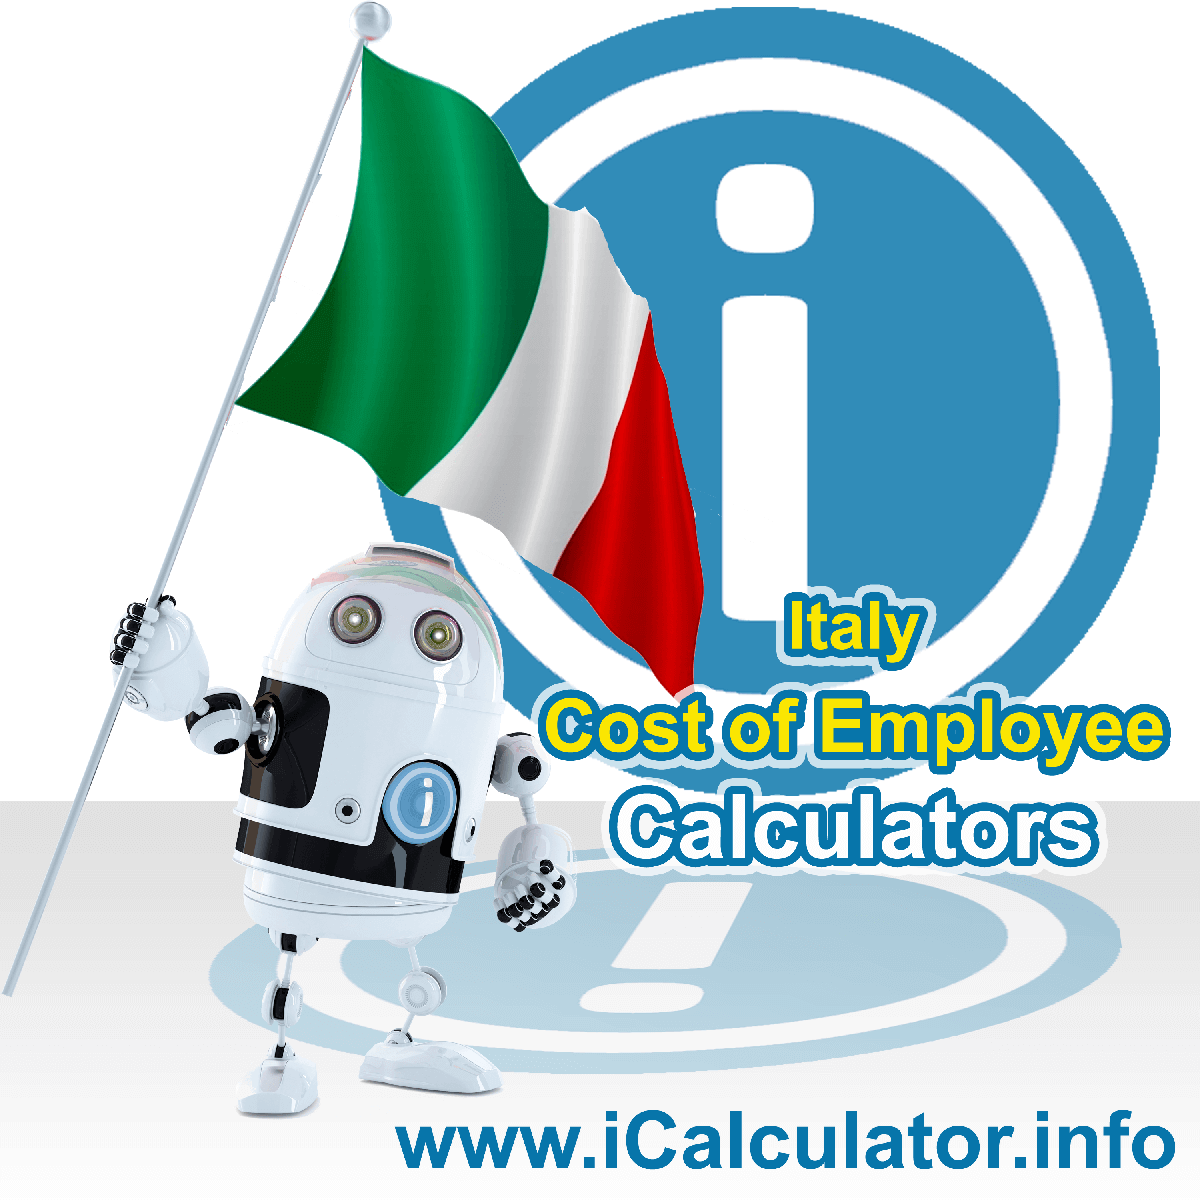 True Cost of an Employee in Italy Calculator. This image shows a new employer in Italy looking hiring a new employee, they calculate the cost of hiring an employee in Italy using the True Cost of an Employee in Italy calculator to understand their employment cost in Italy in 2019